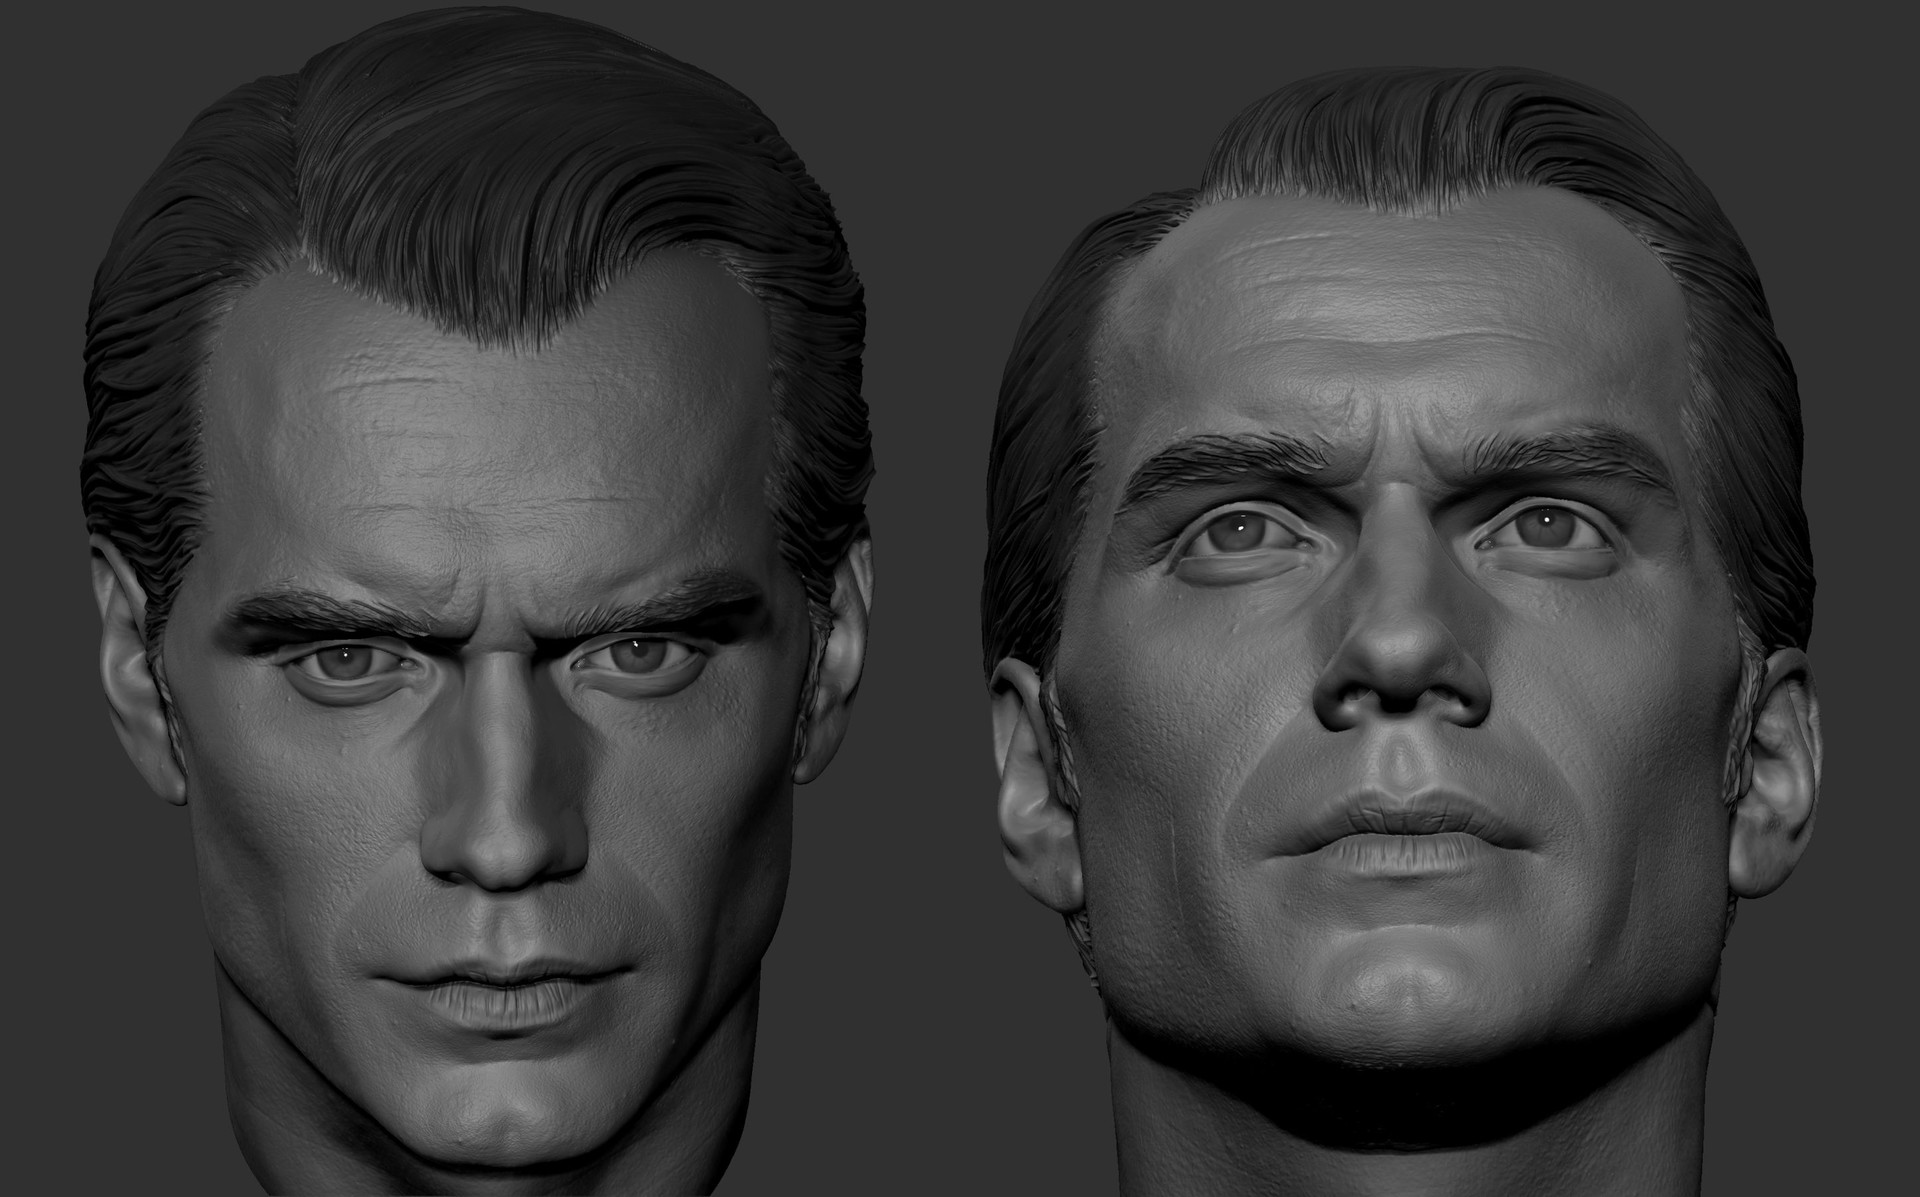 zbrush screen grab-02